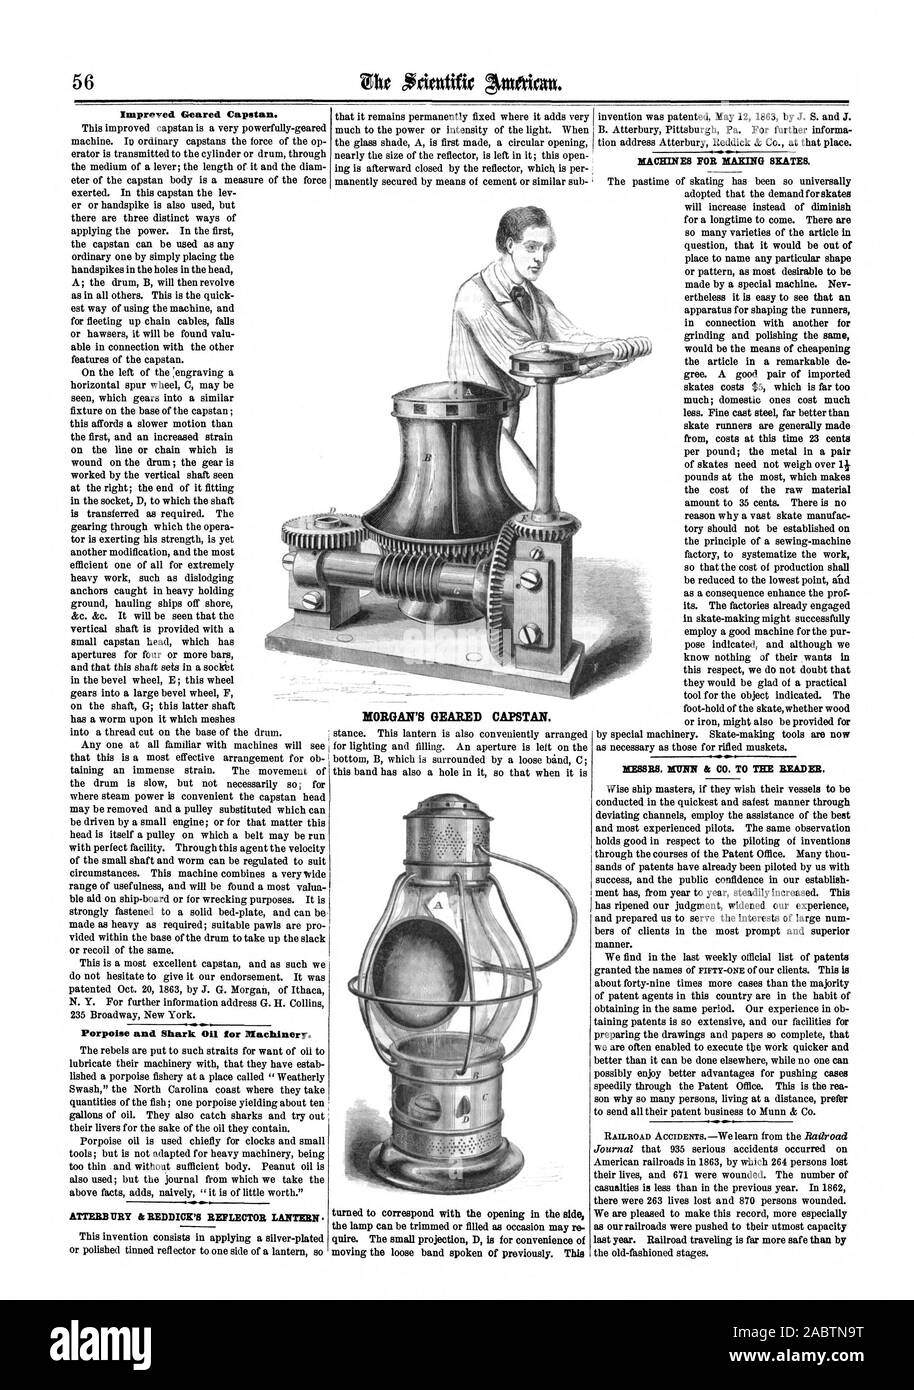 Improved Geared Capstan. Porpoise and Shark Oil for Machinery. ATTERB DRY & REDDICK'S REFLECTOR LANTERN MORGAN'S GEARED CAPSTAN. MACHINES FOR MAKING SKATES. MESSRS. WINN & CO. TO THE READER., scientific american, 1864-01-23 Stock Photo